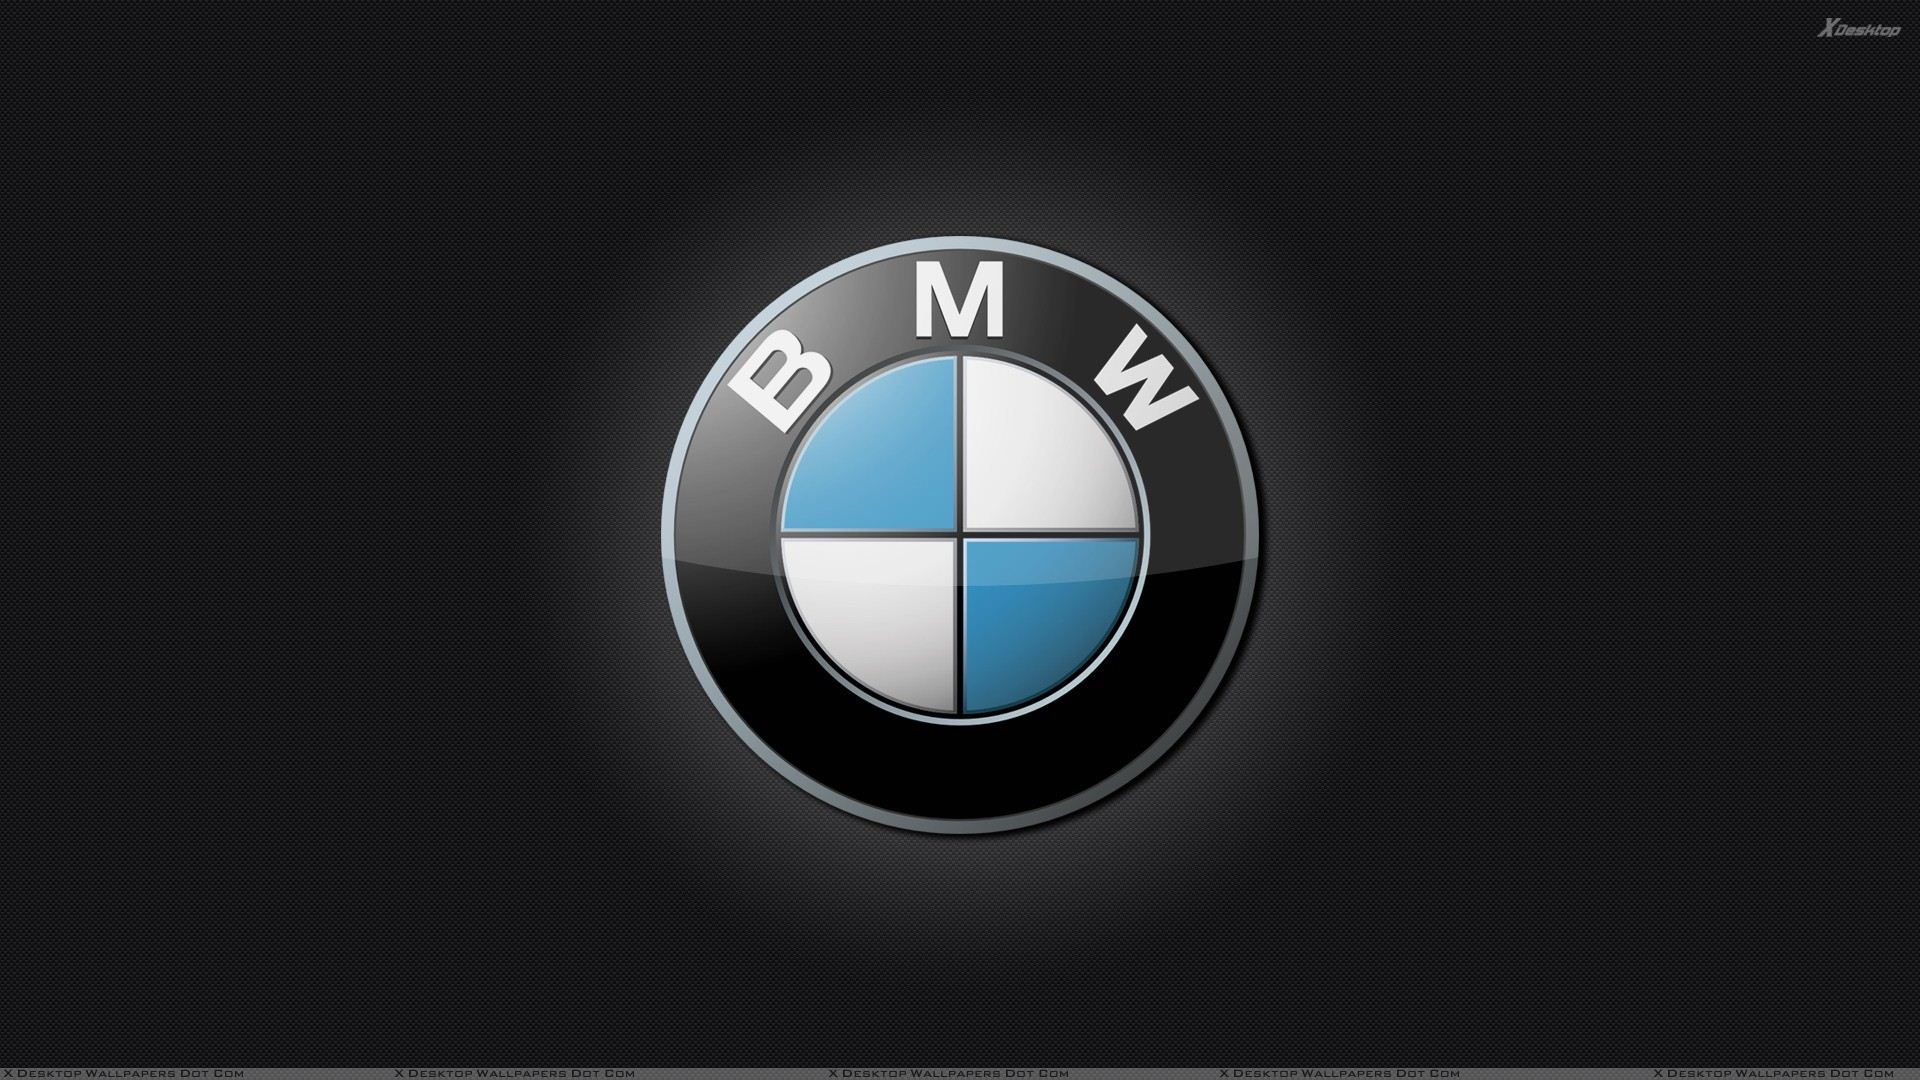 Bmw Logo On Black Background Wallpaper